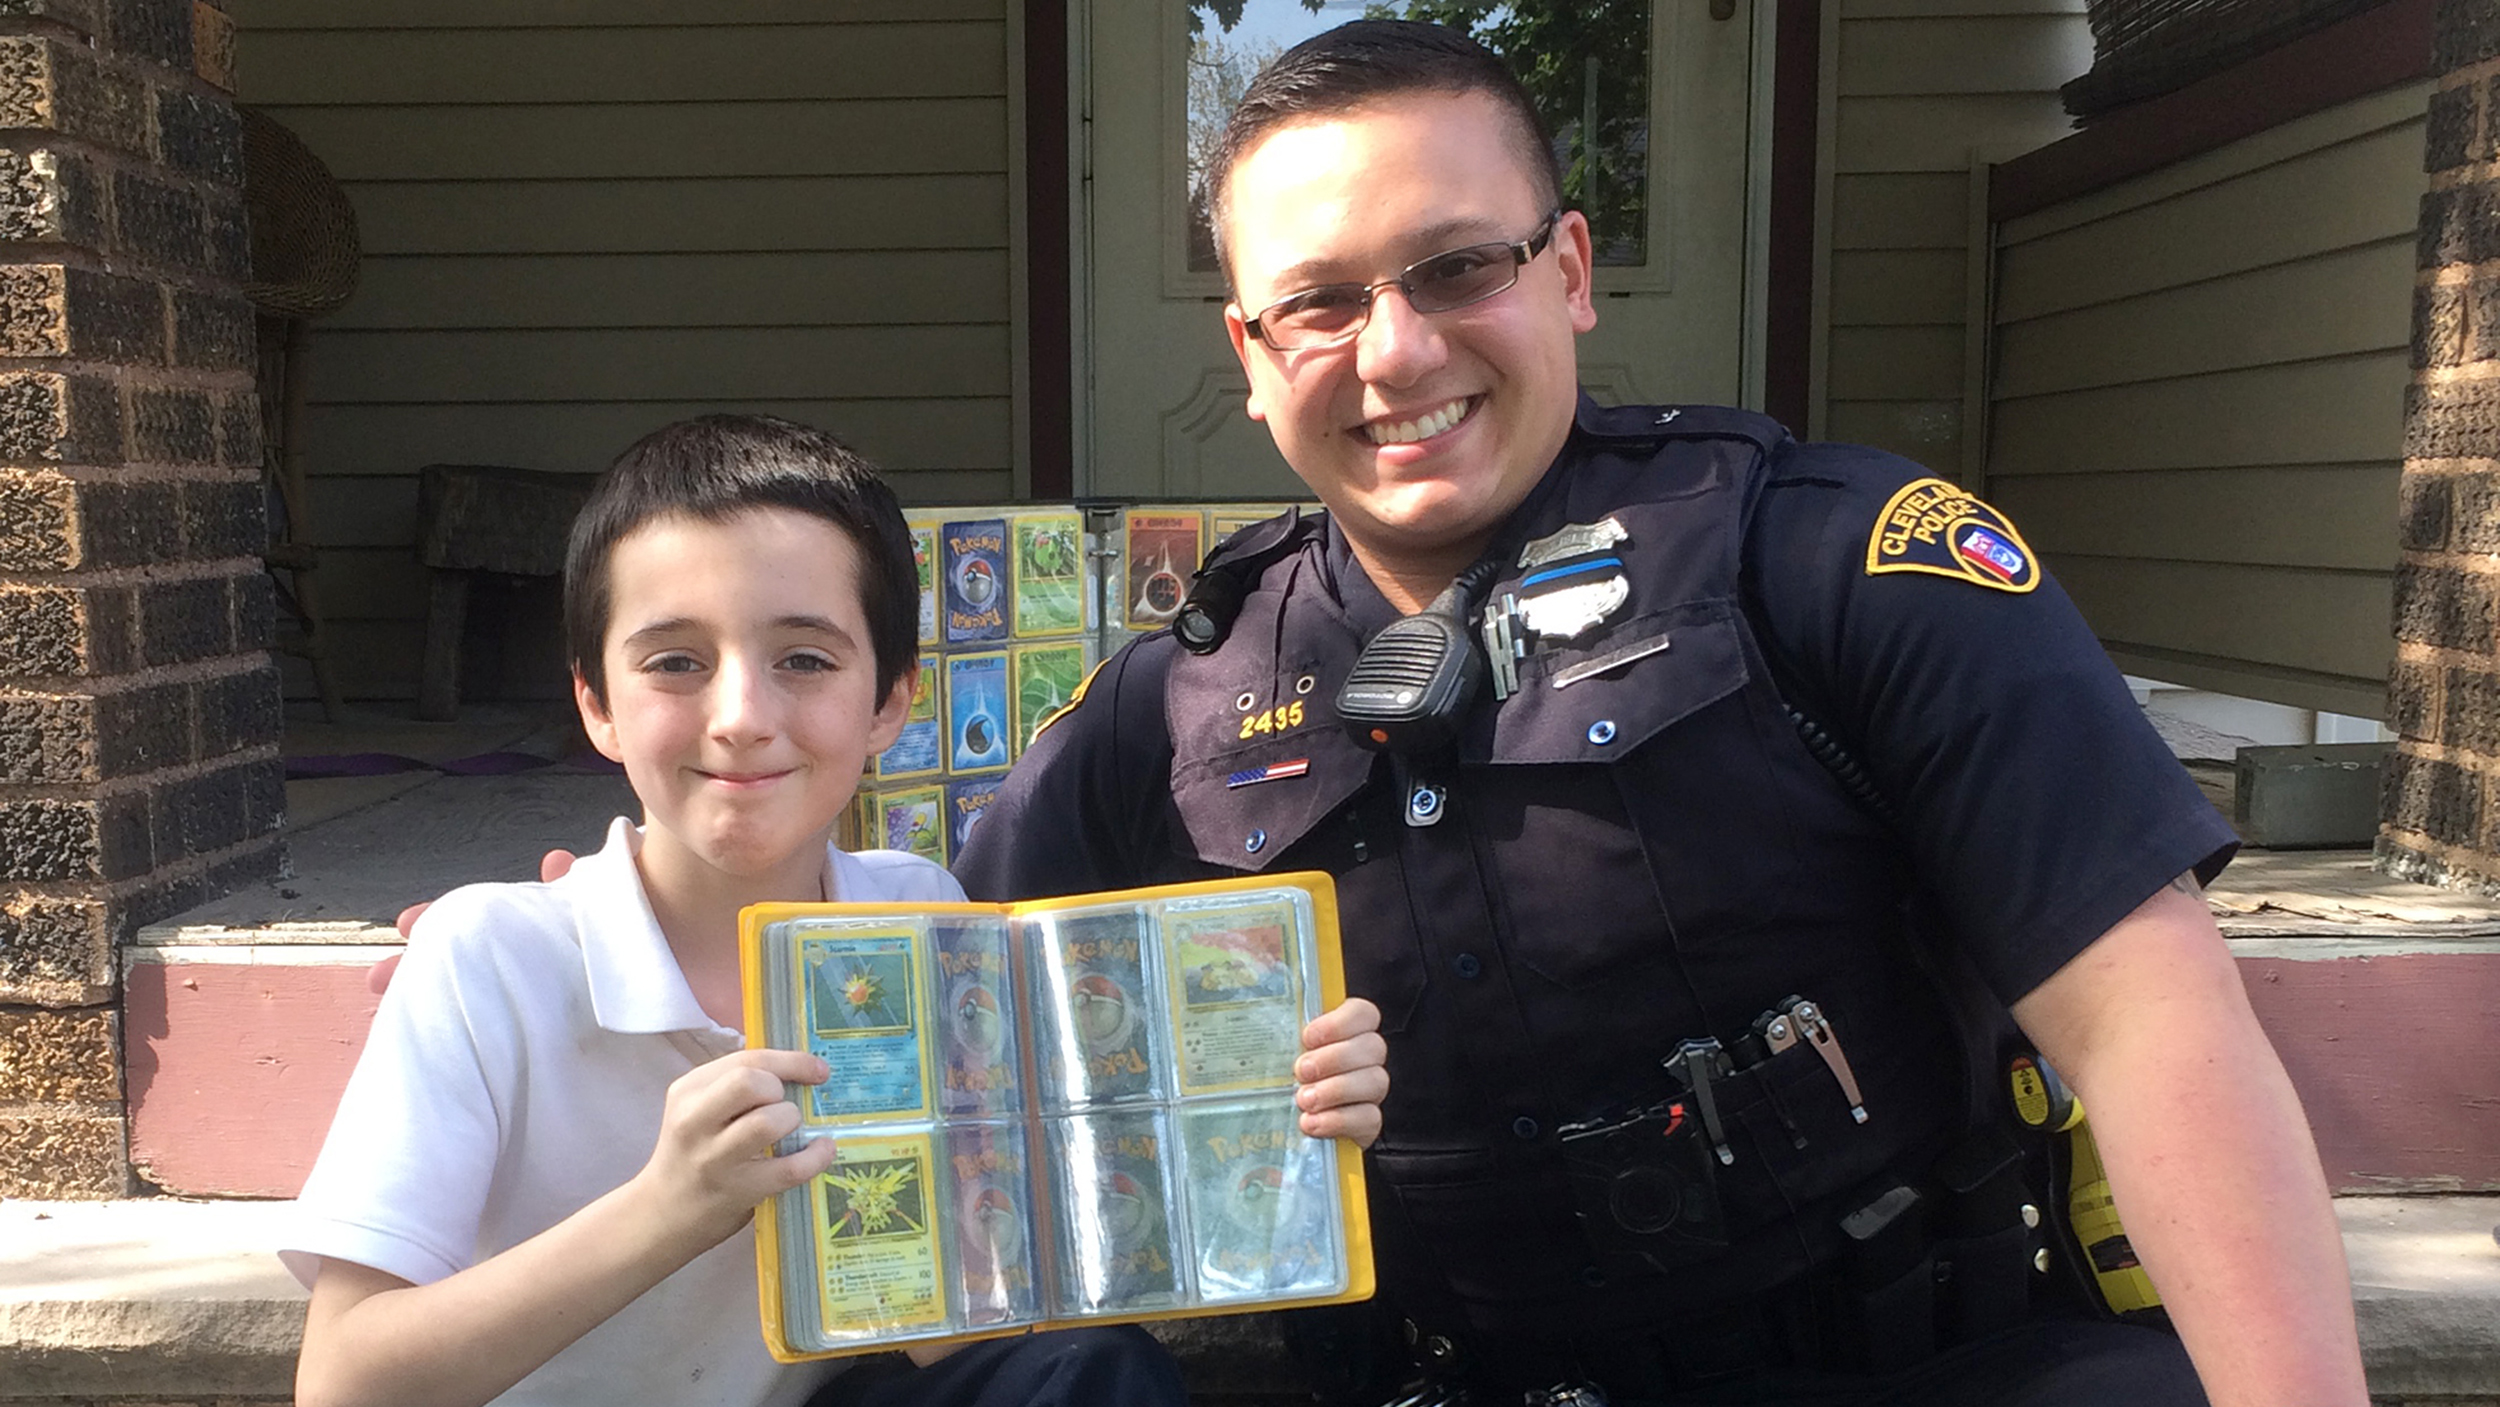 Cop Gives Pokemon Cards To Boy Whose Collection Was Stolen